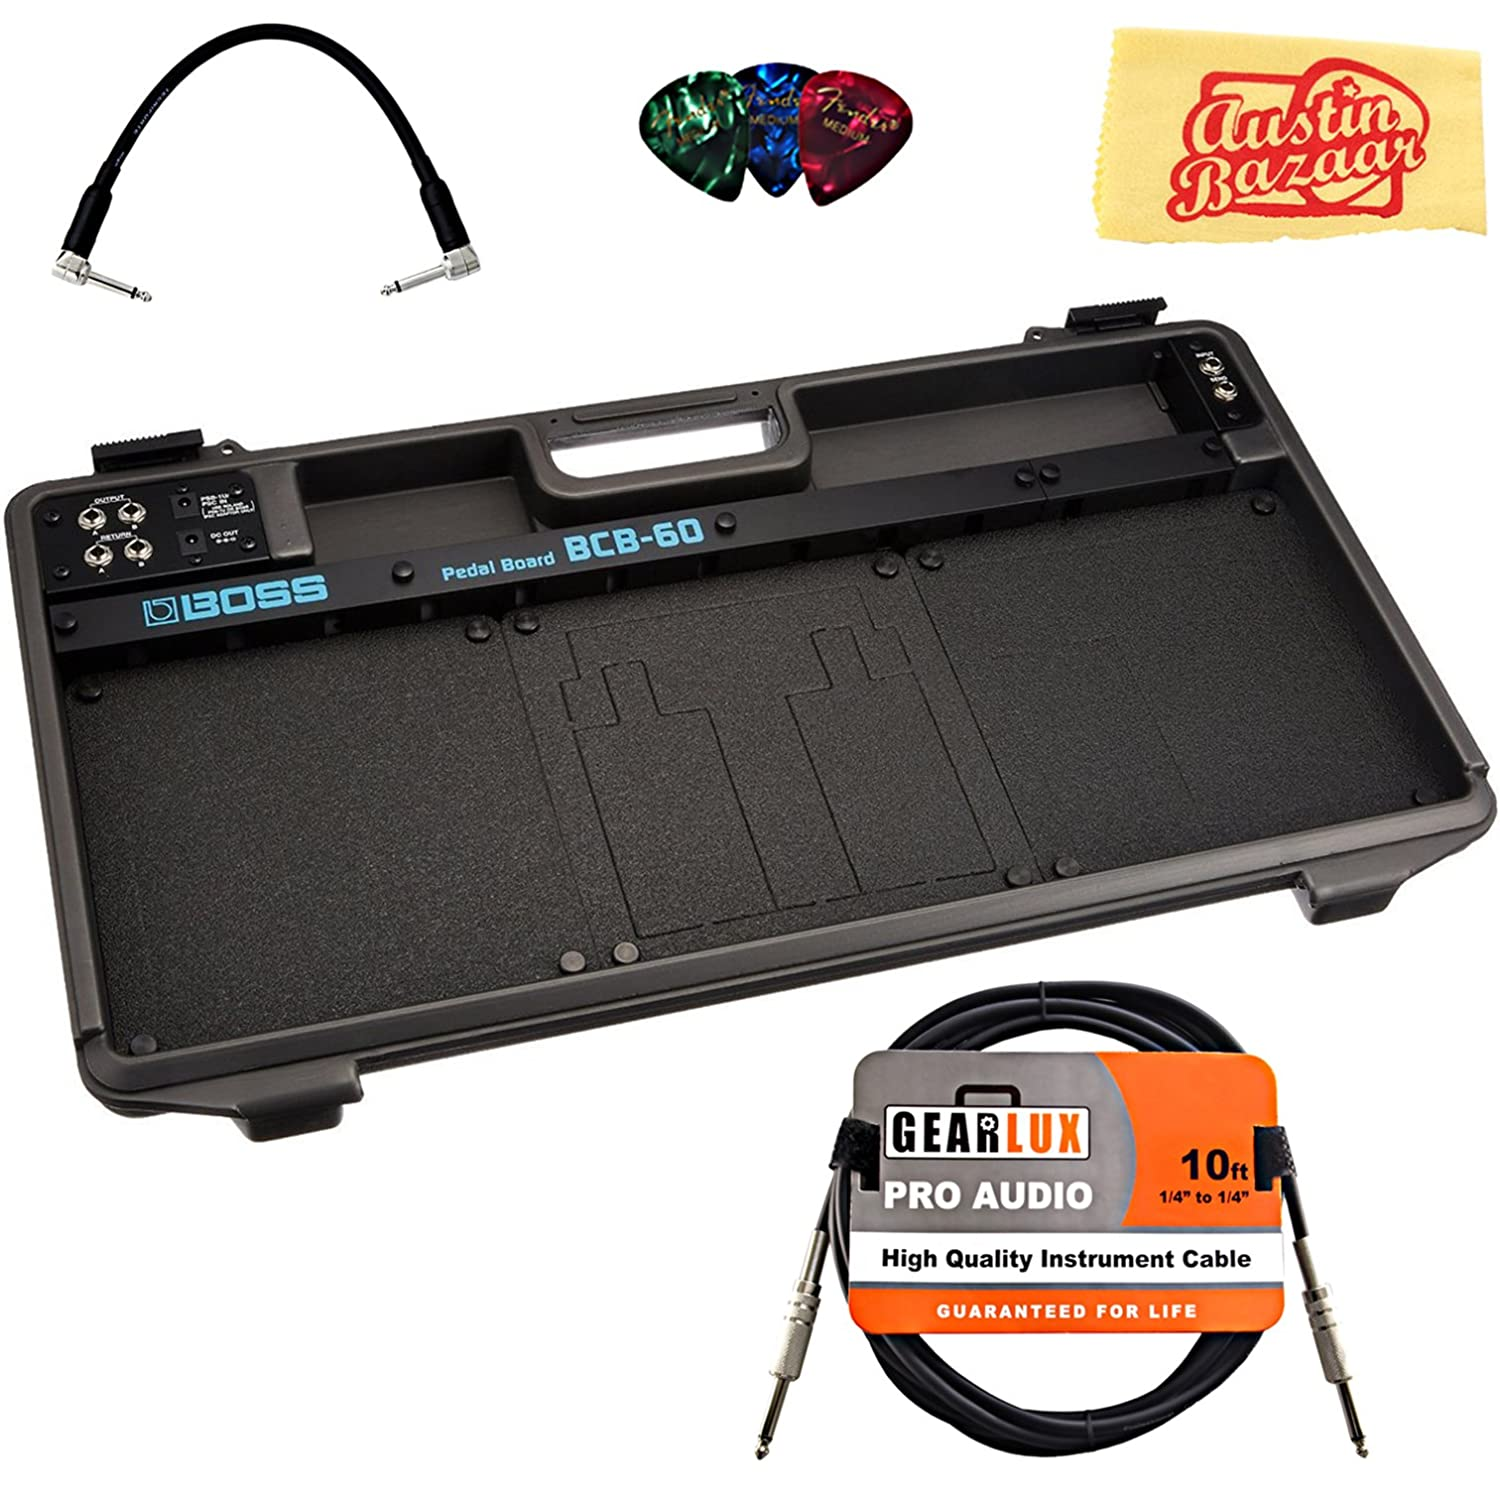 Boss BCB-60 Pedal Board Bundle with Instrument Cable, Patch Cable, Picks, and Austin Bazaar Polishing Cloth BOS-BCB60-COMBO-STD